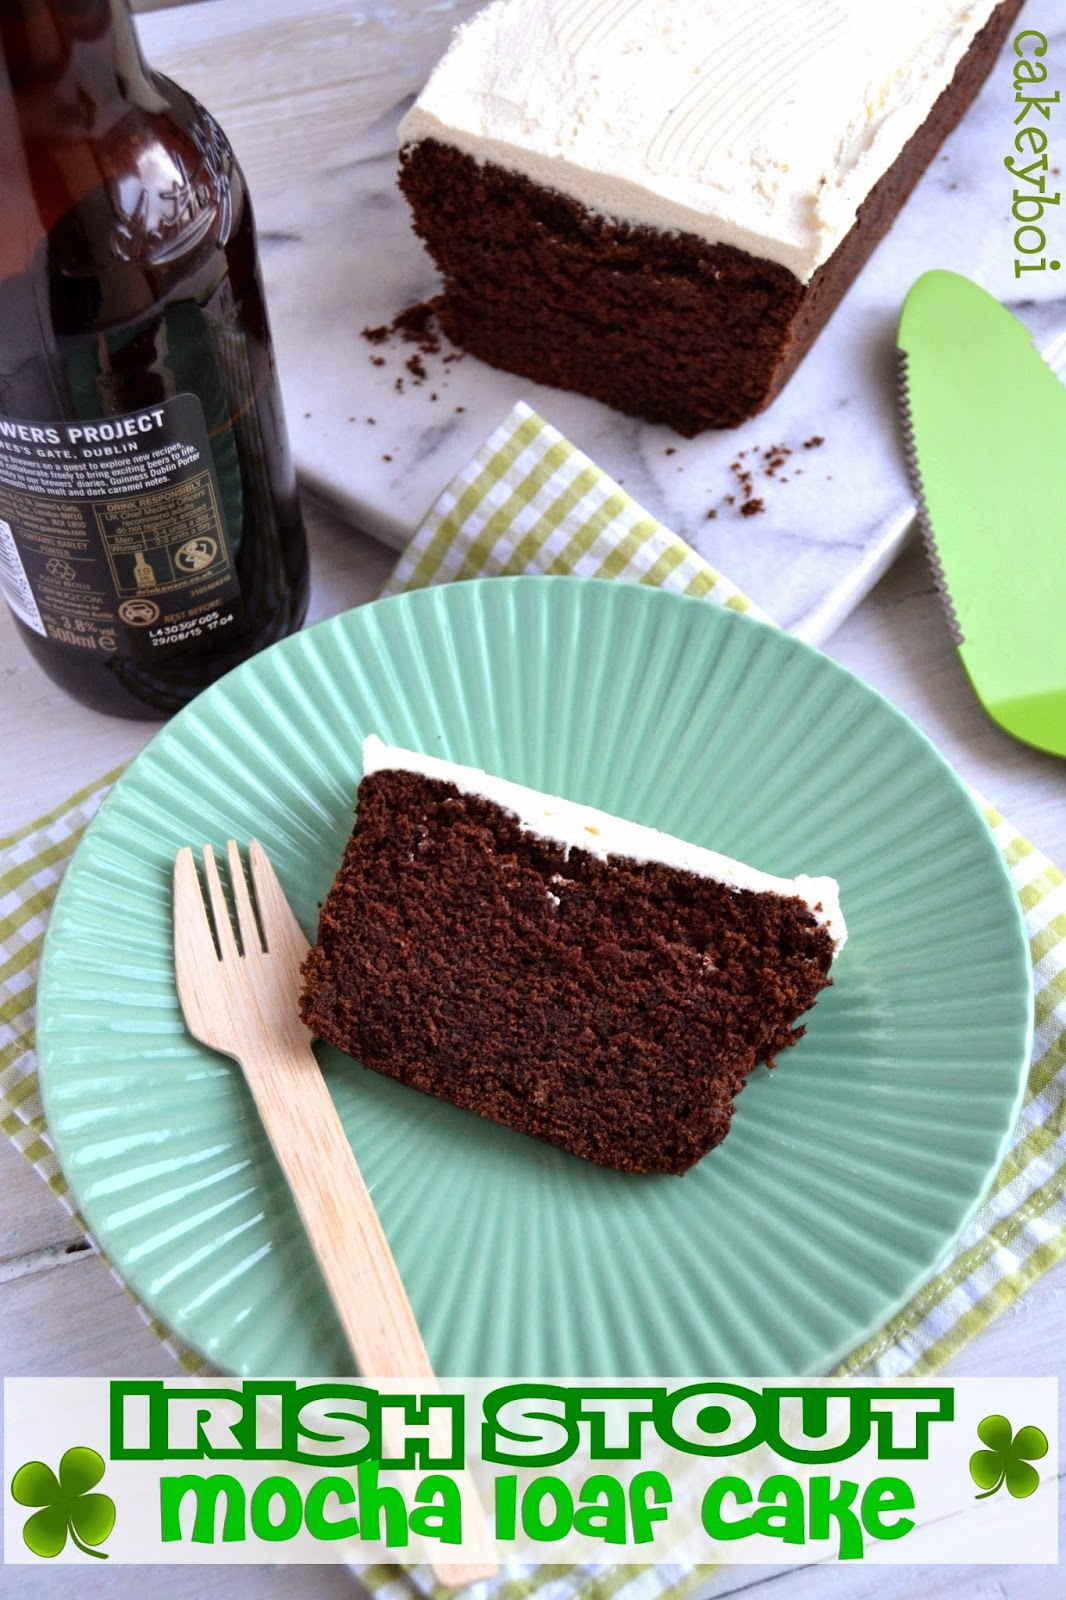 Cakeyboi: Irish Stout Mocha Loaf Cake